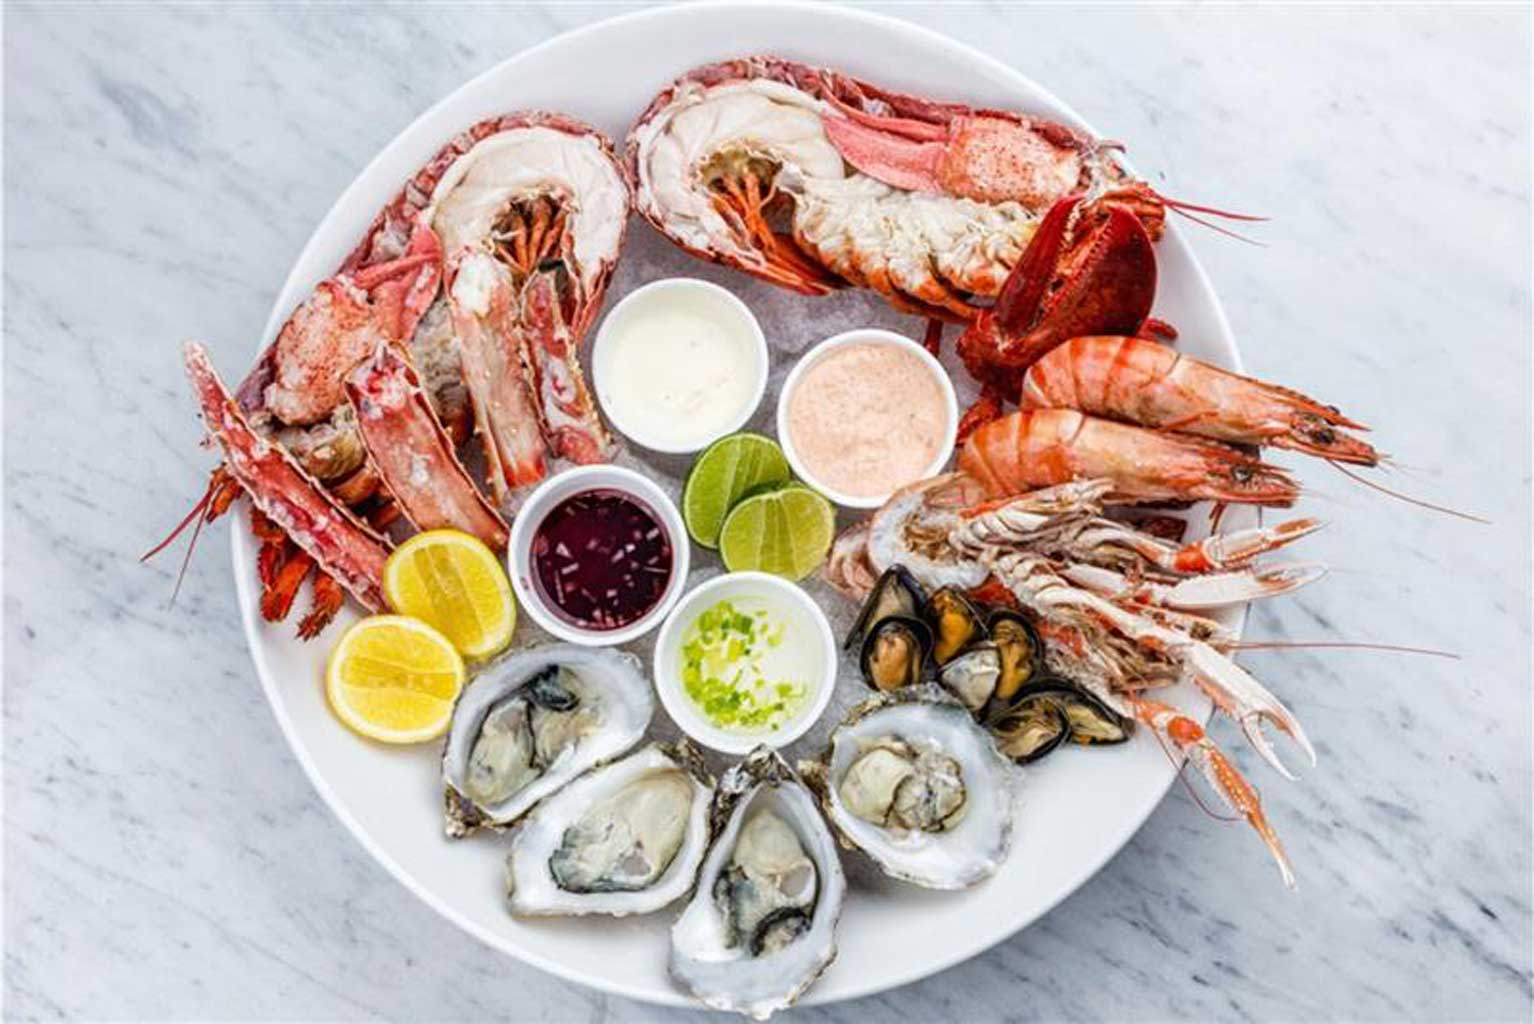 a fresh seafood plate full of oysters, shellfish, lobster, and mussels over ice with garnishes of lemon, lime and assorted dipping sauces